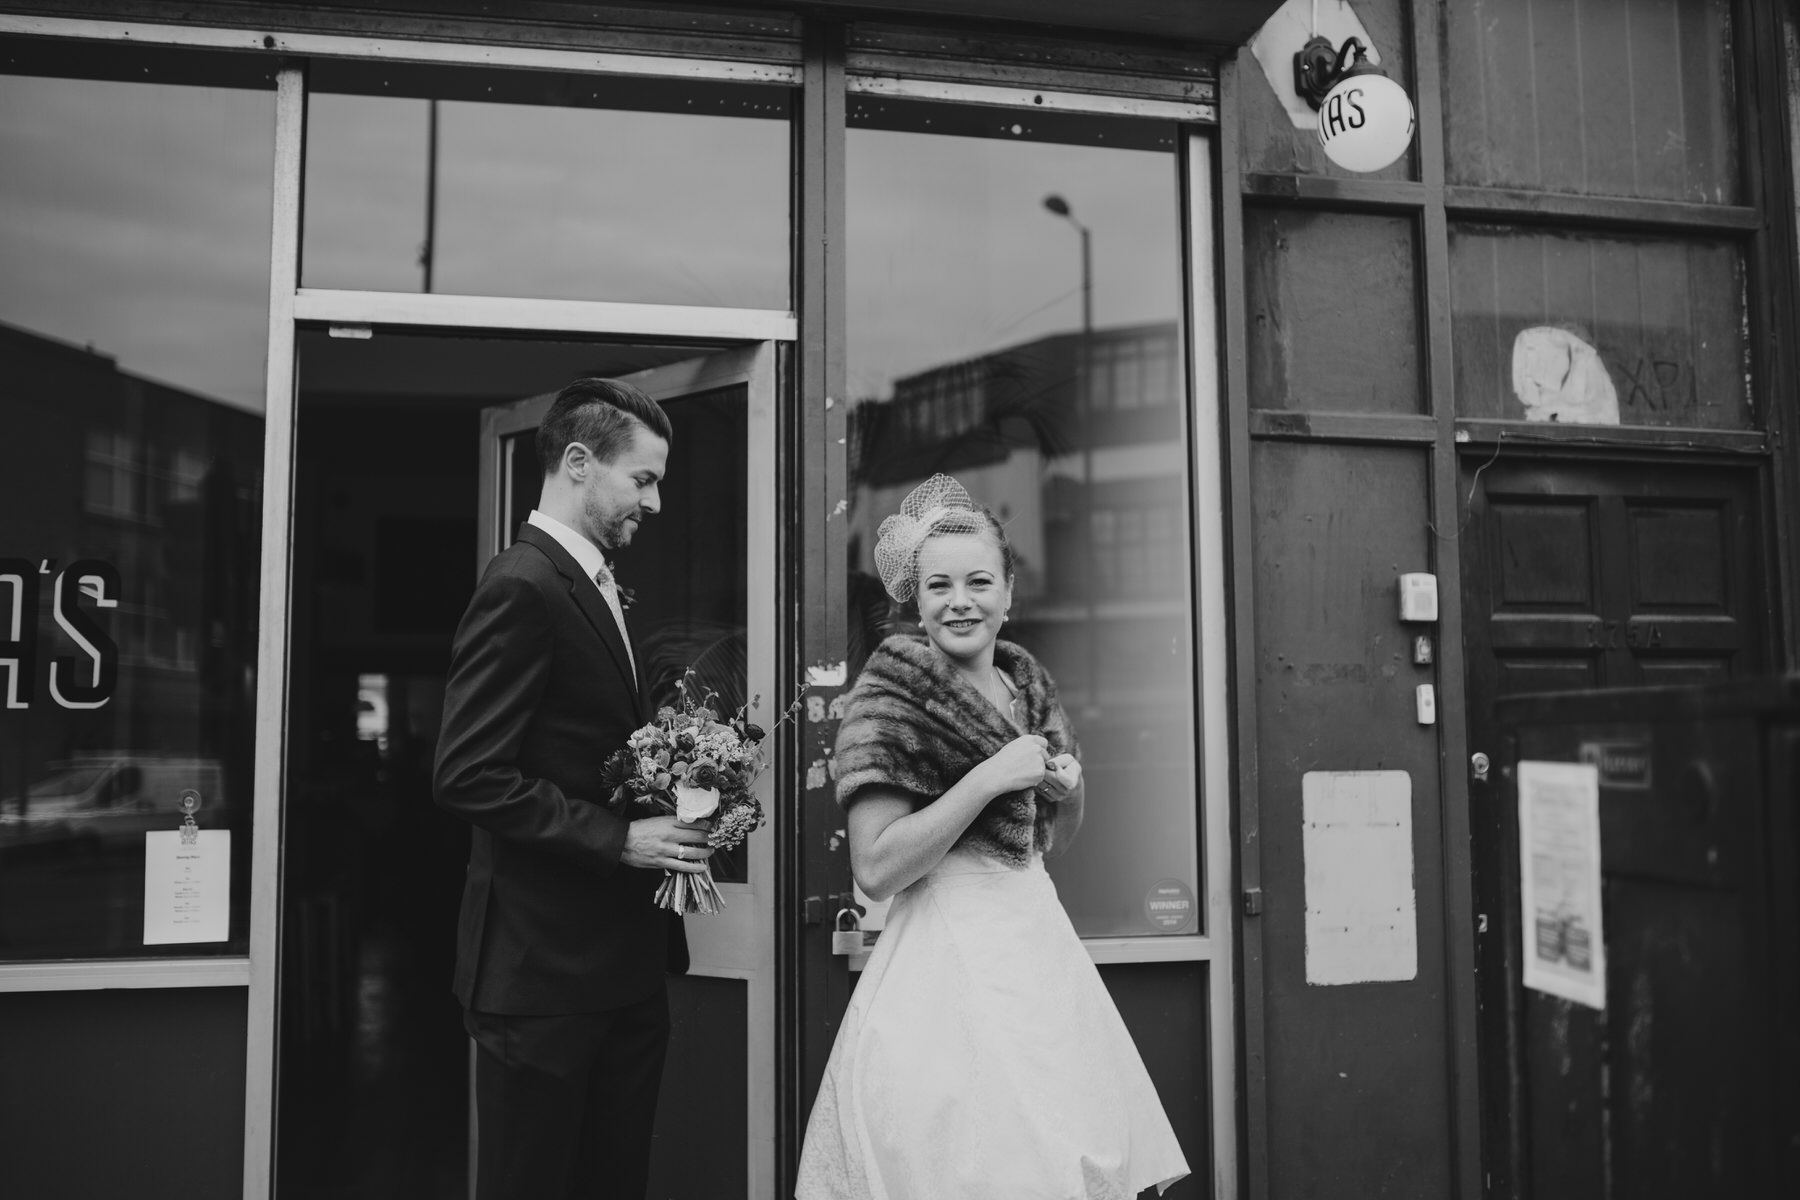 MS-Londesborough-Pub-wedding-Hackney-alternative-photographer-68-bride-groom-outside-Ritas-London.jpg